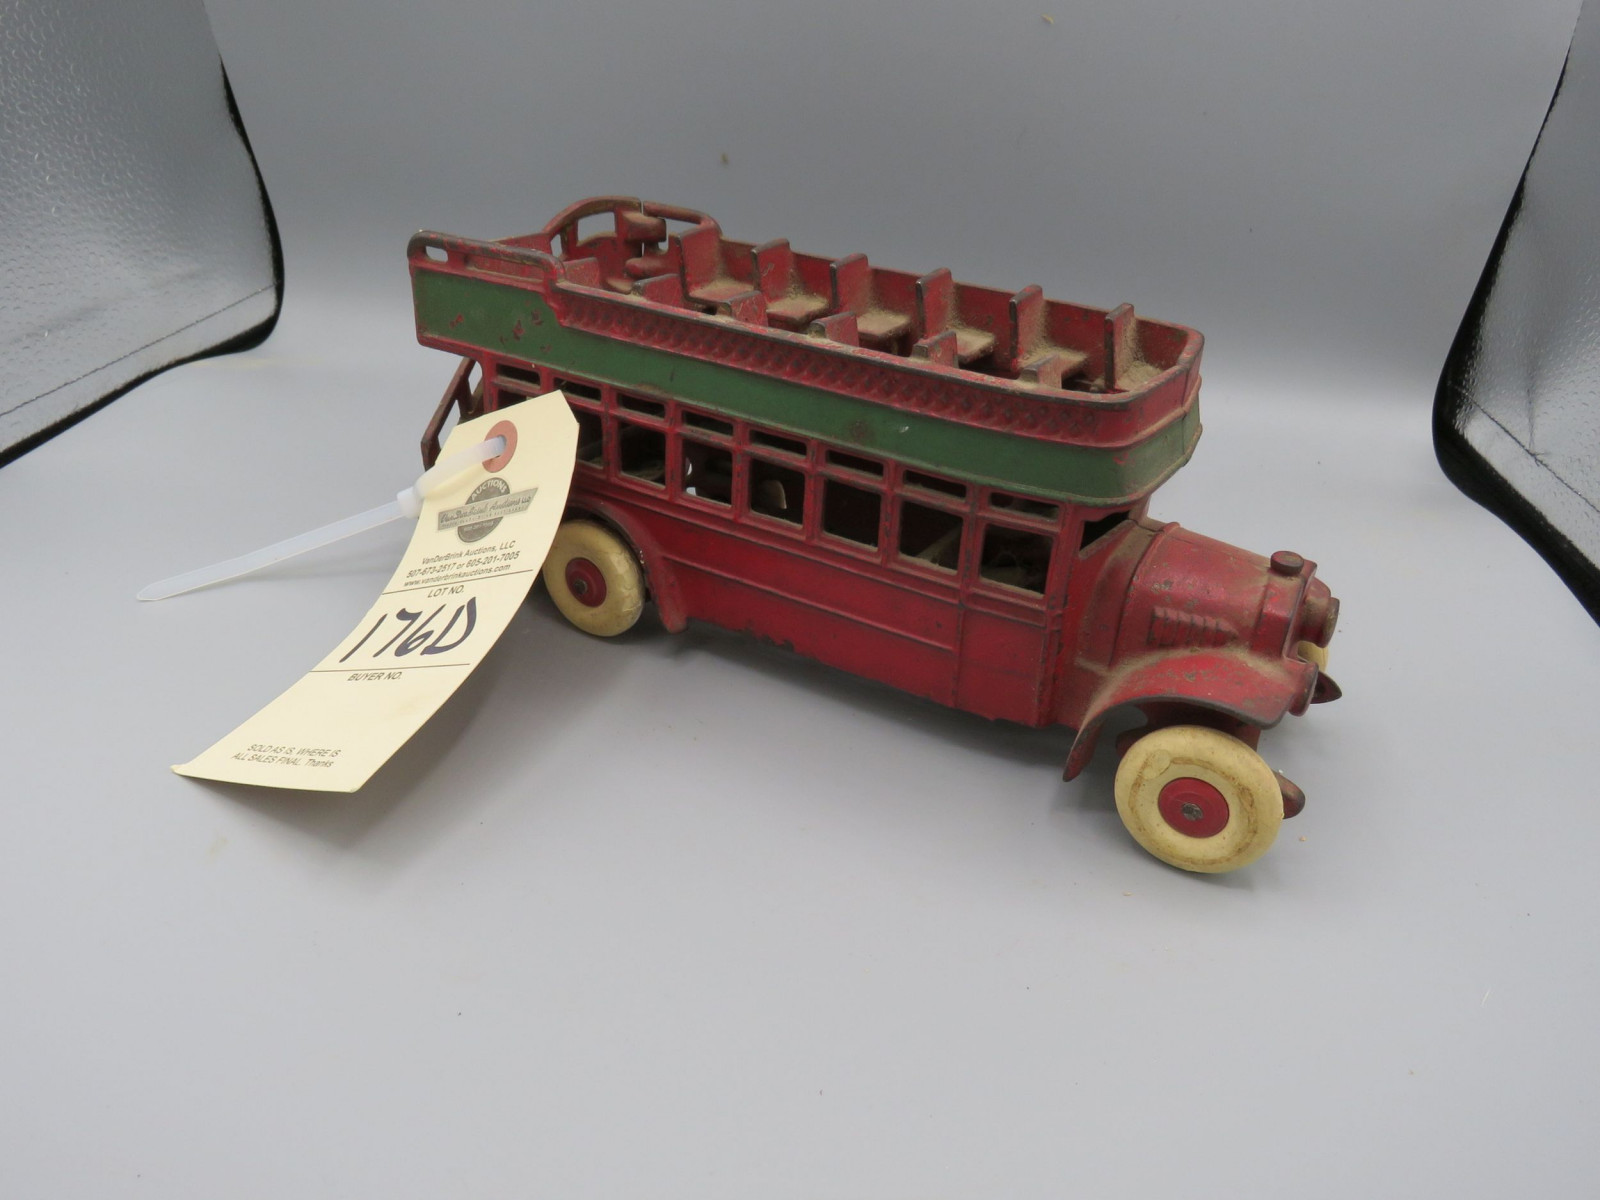 Arcade Double Decker Bus Cast Iron Approx. 10 inches - Image 1